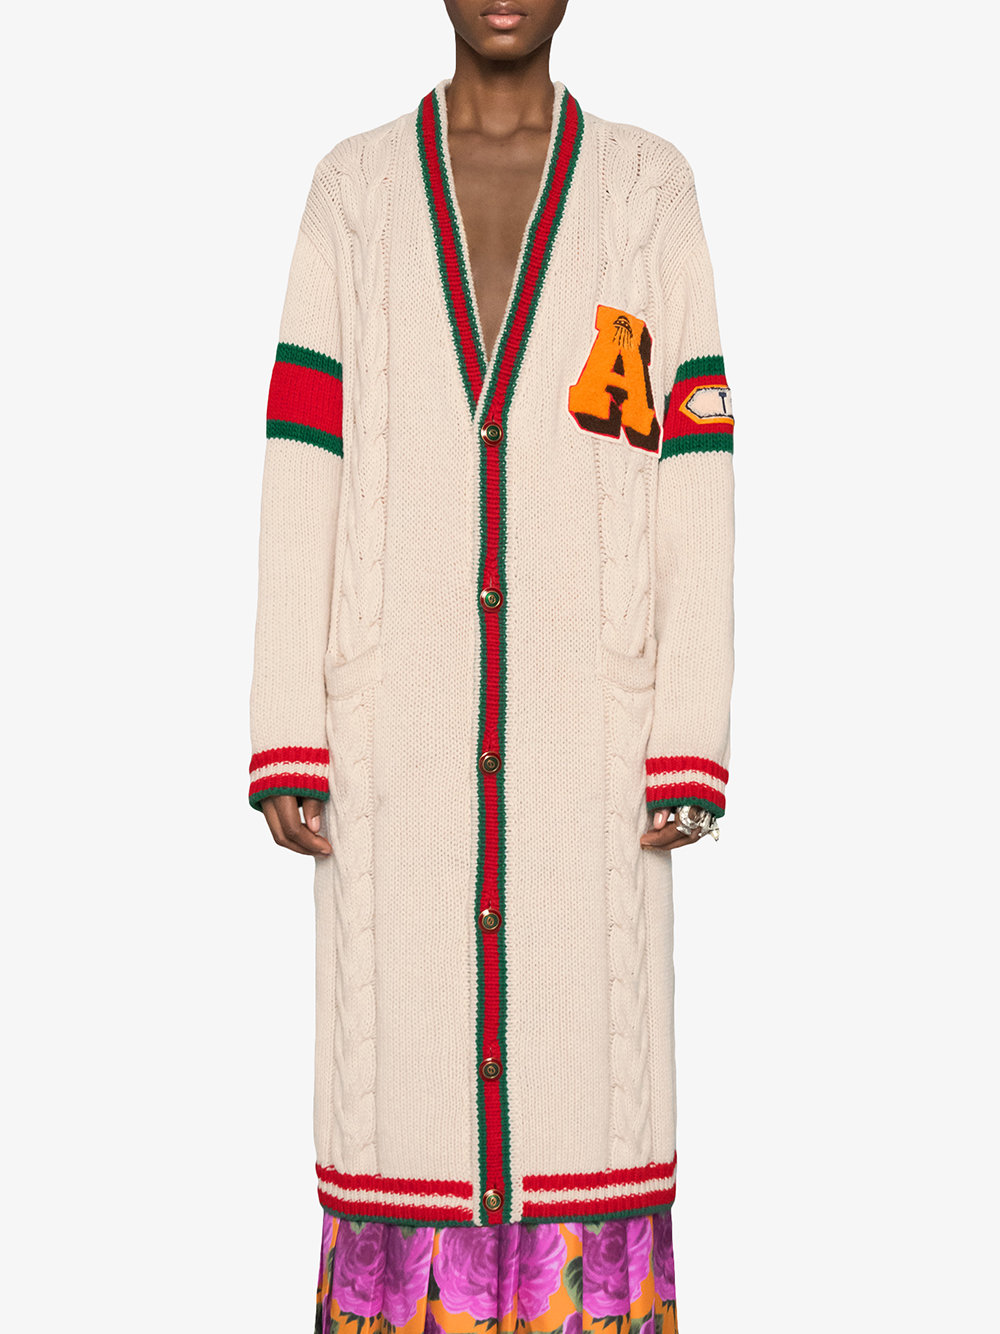 Embroidered Chunky Cable Knit Cardigan - Farfetch